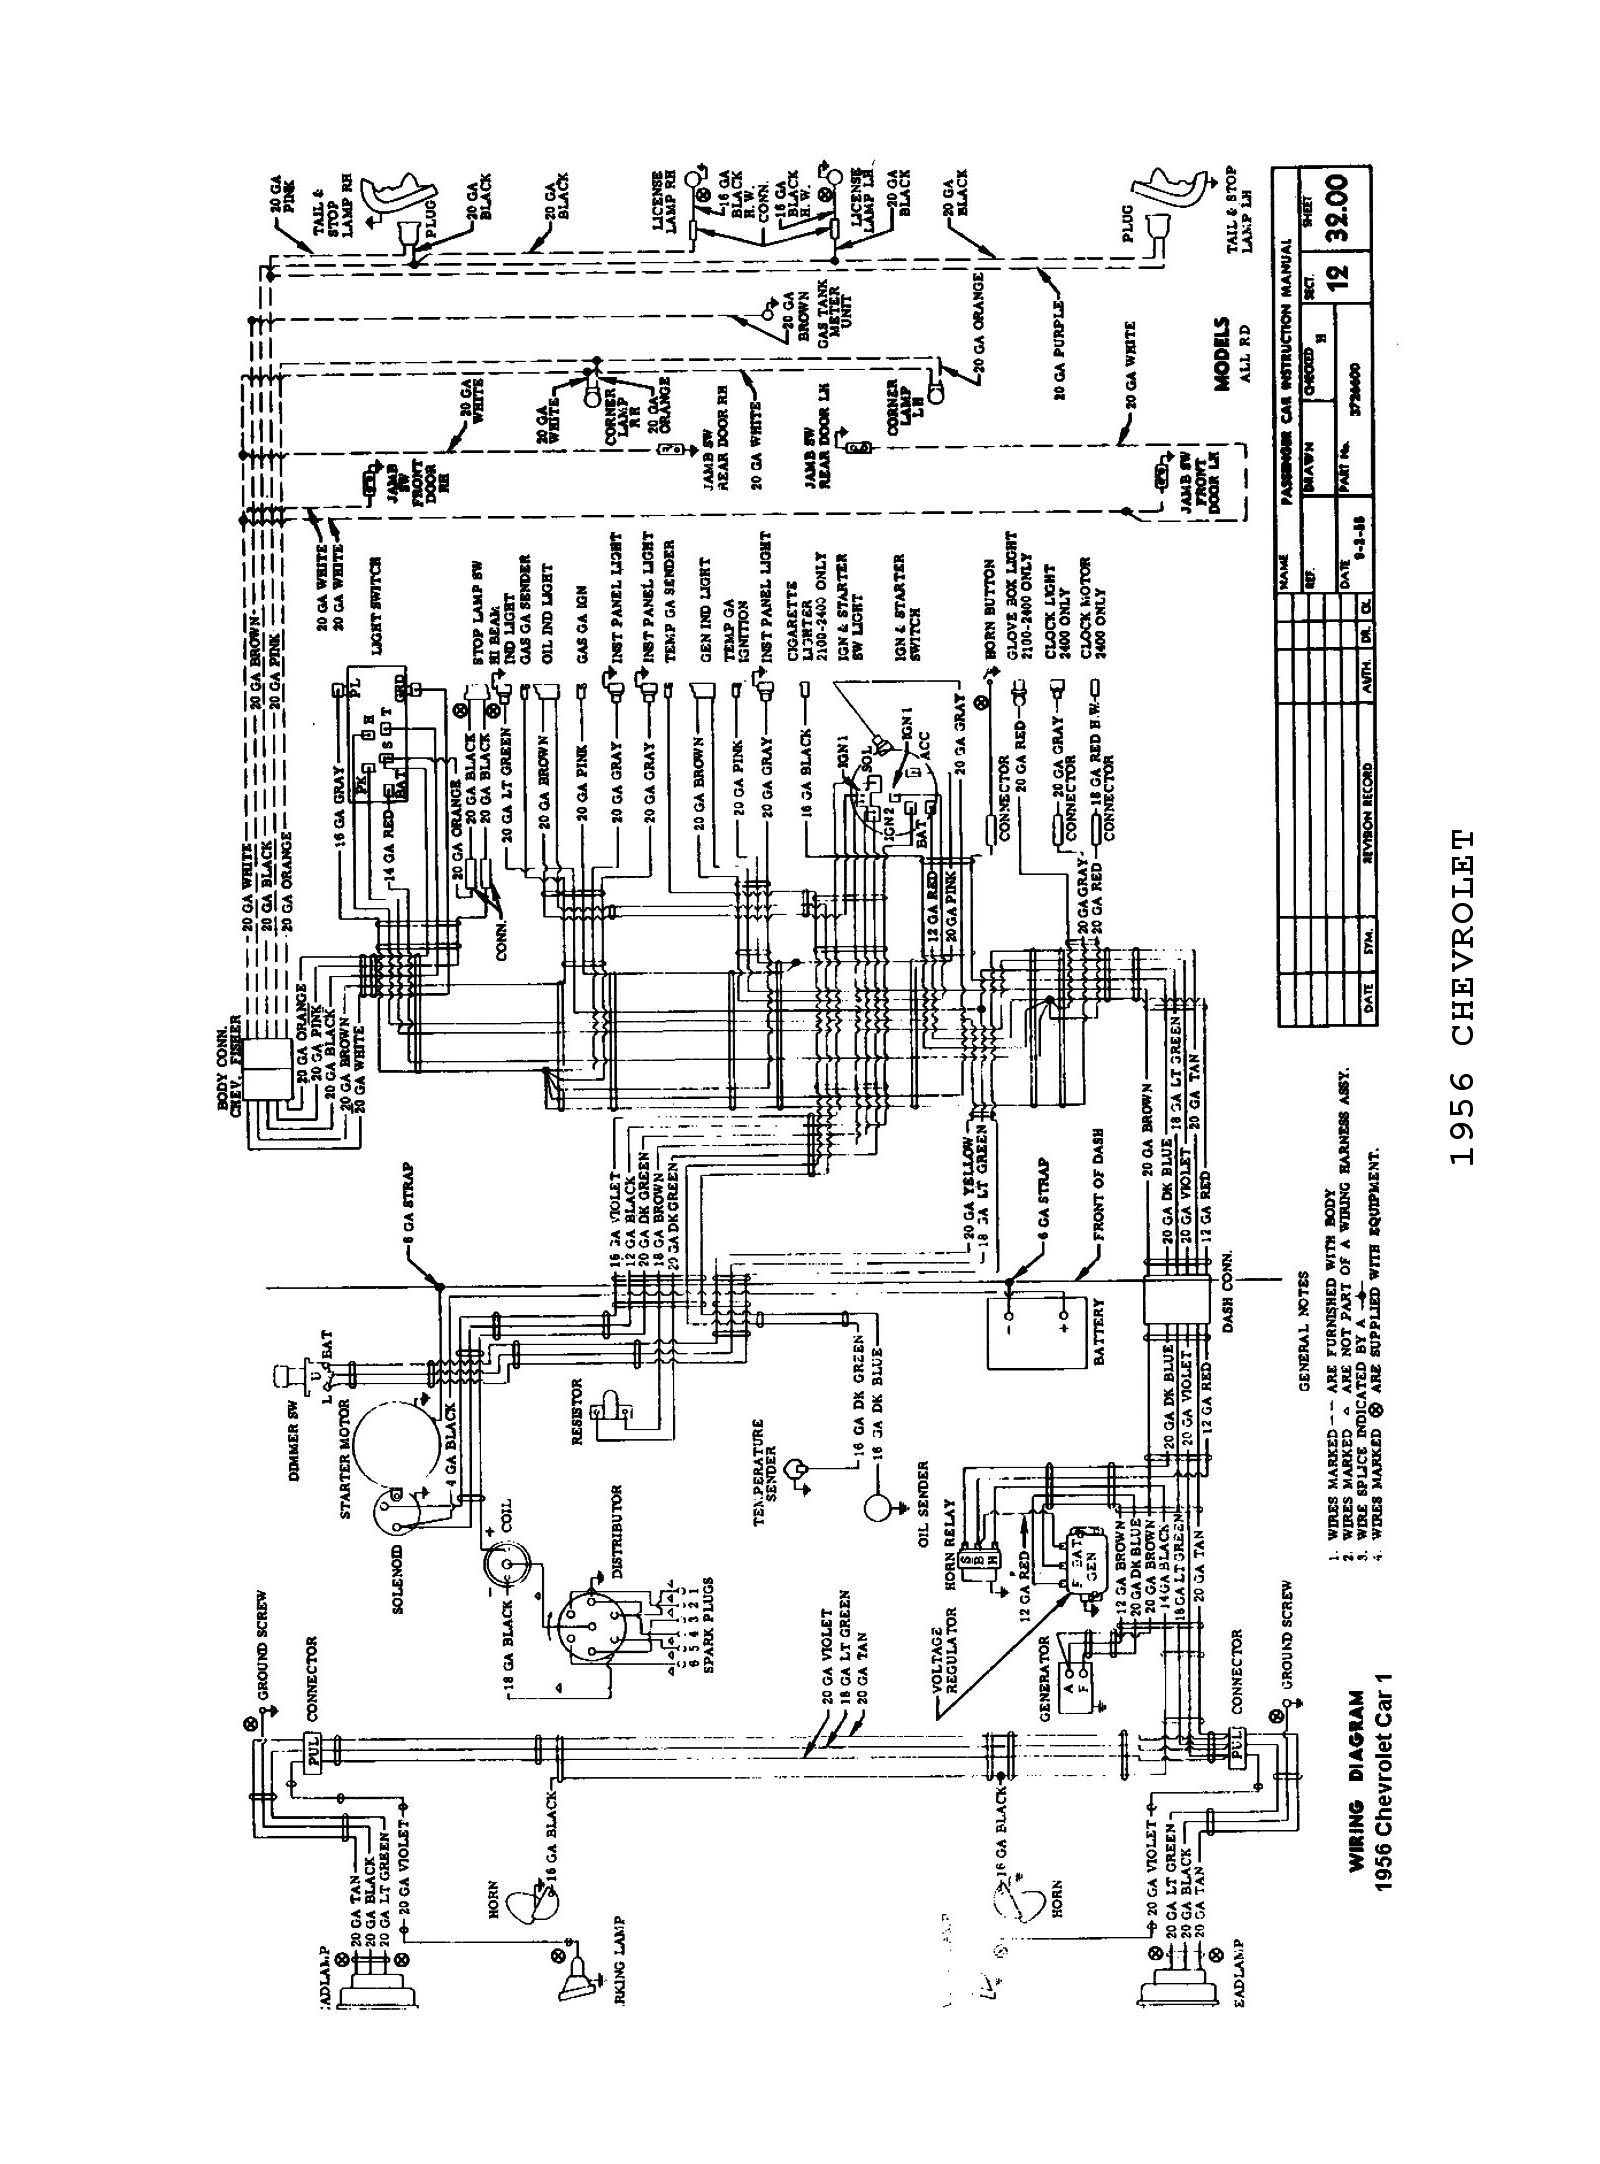 hight resolution of 1965 chevrolet pickup wiring diagram